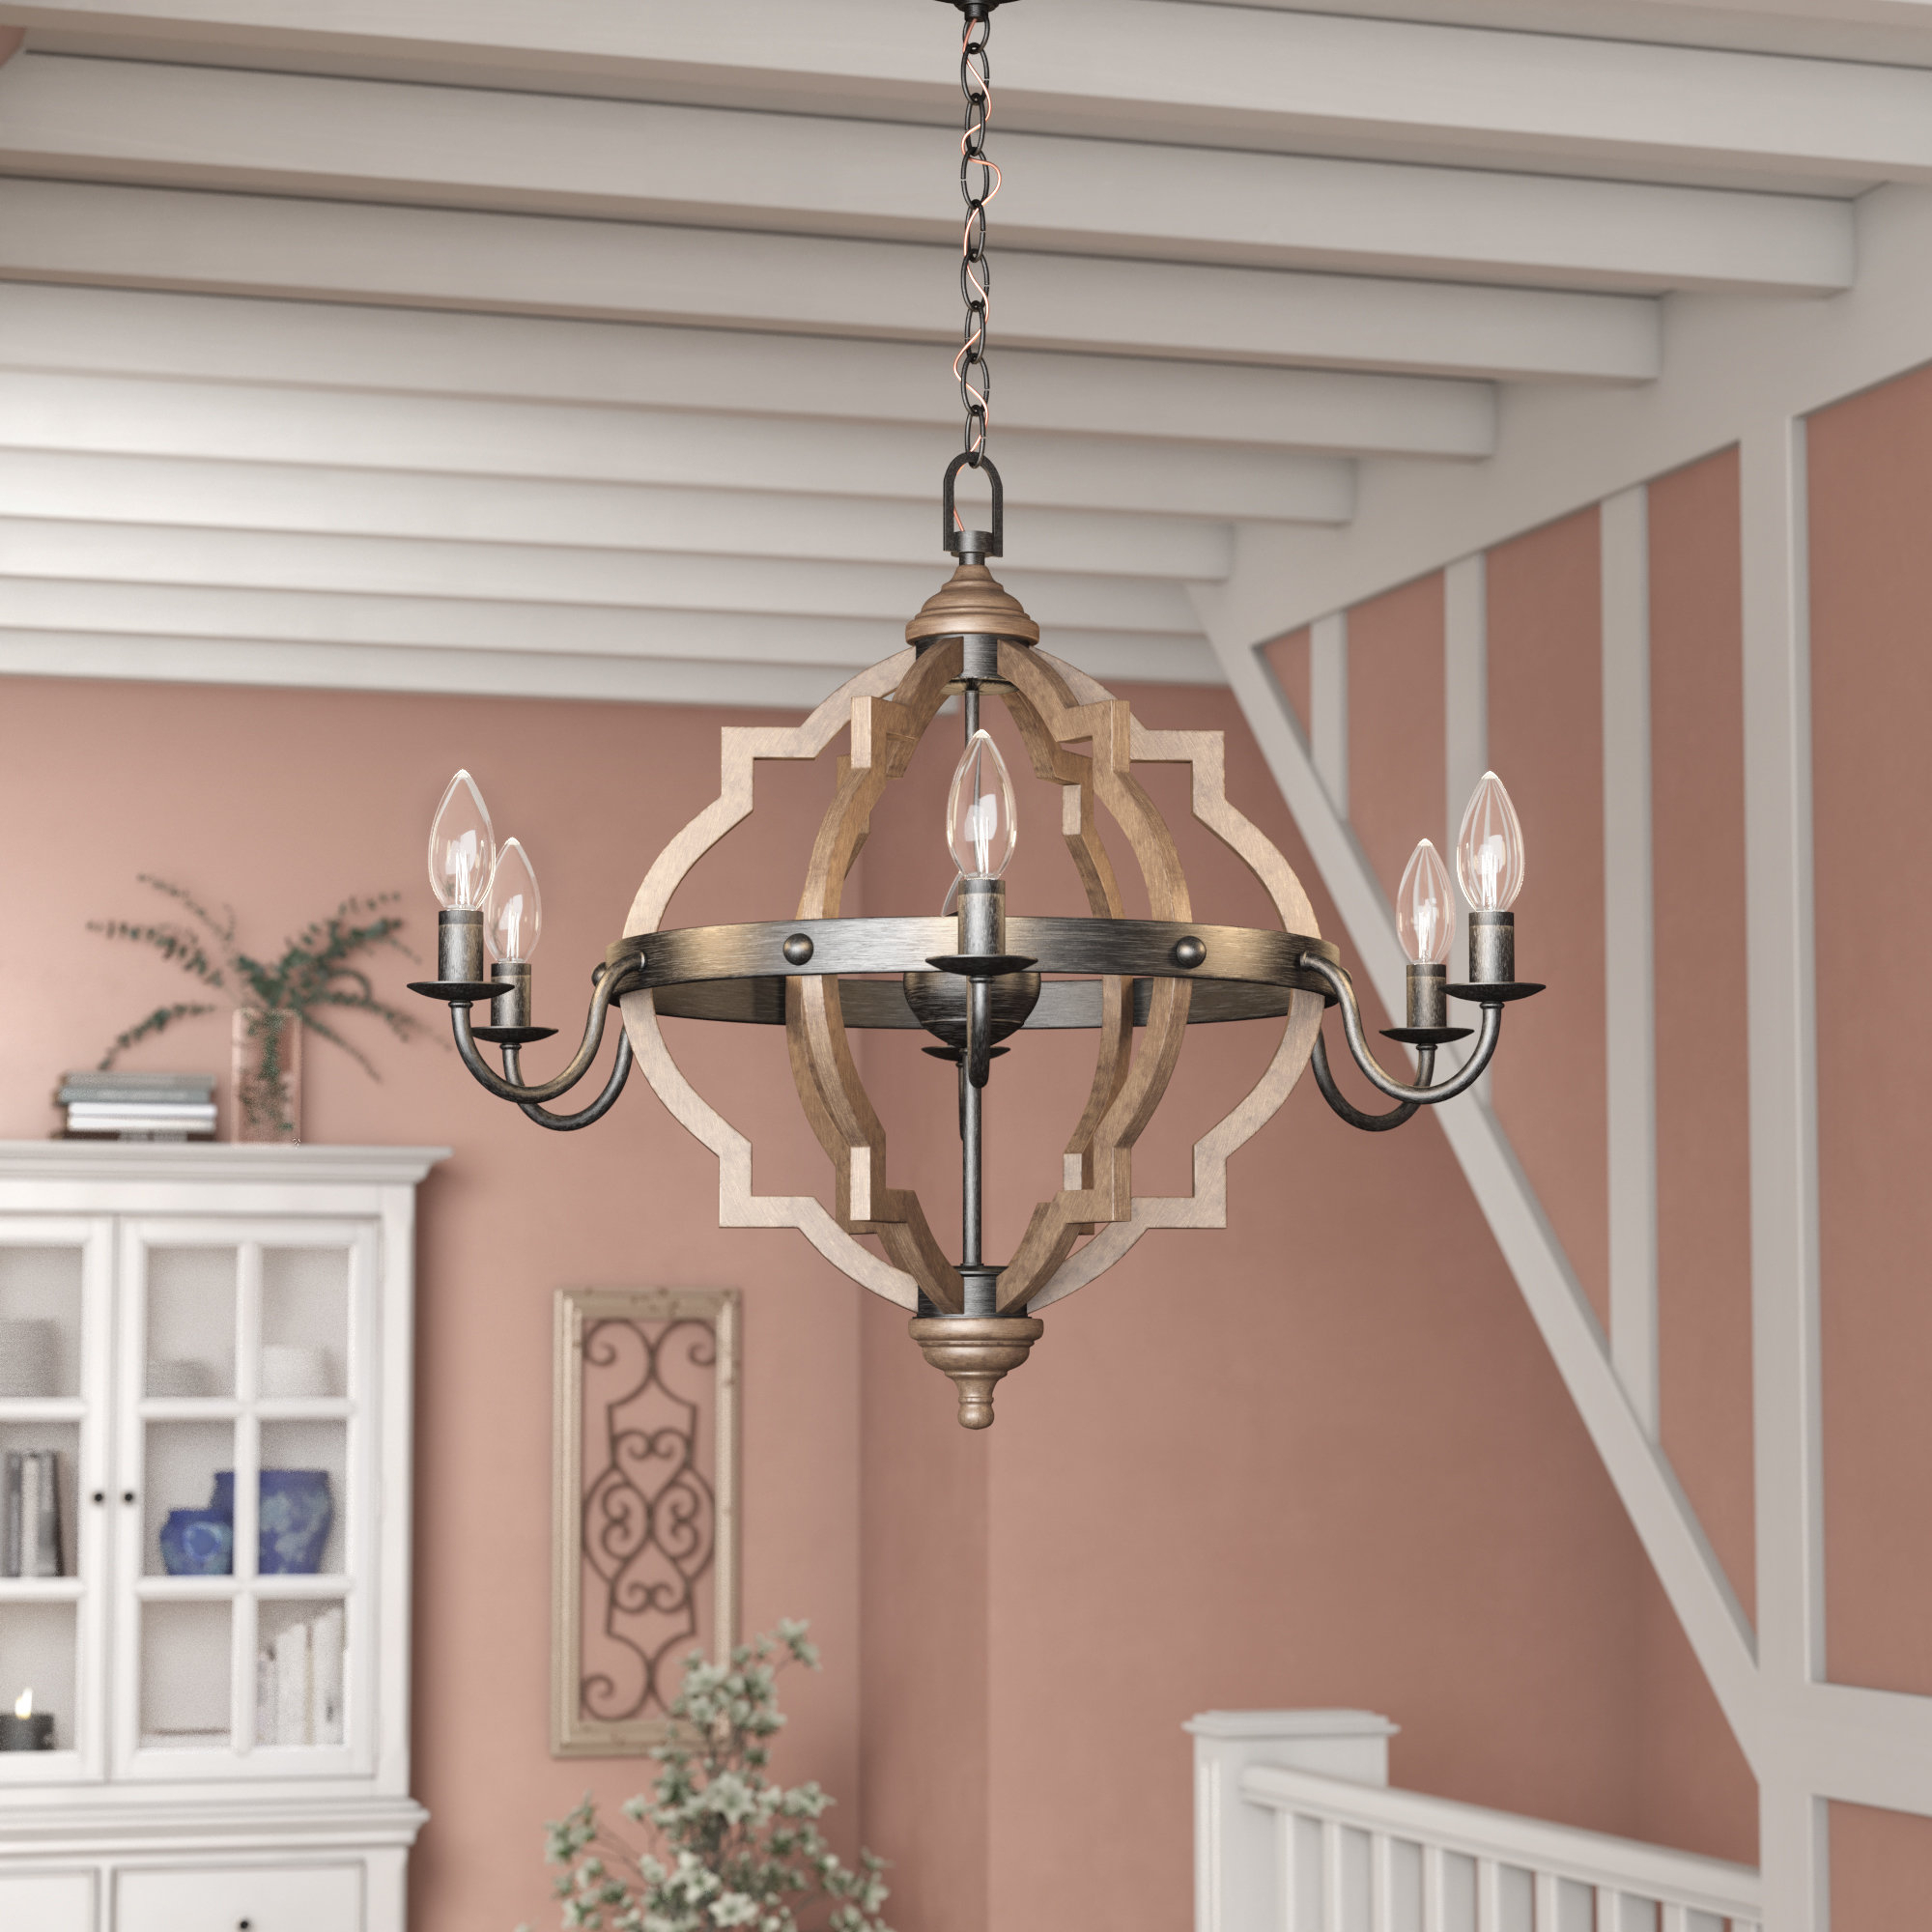 Preferred Donna 6 Light Candle Style Chandelier Throughout Bennington 6 Light Candle Style Chandeliers (Gallery 6 of 20)